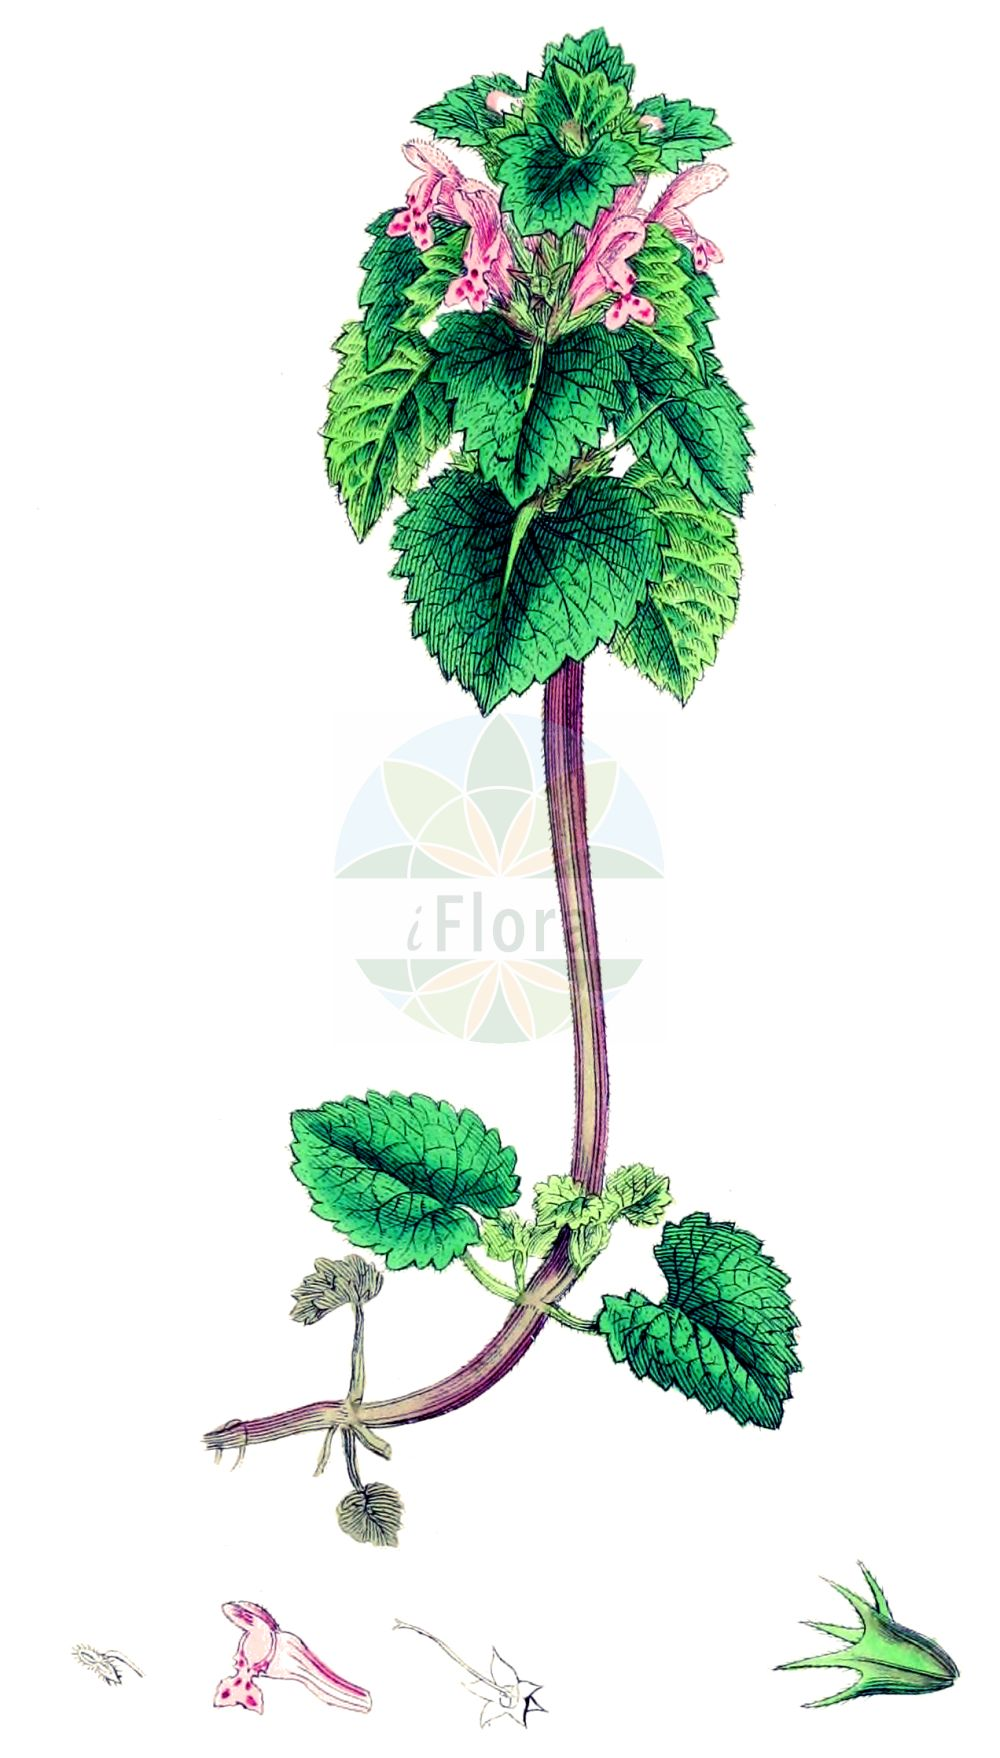 Historische Abbildung von Lamium purpureum (Purpurrote Taubnessel - Red Dead-nettle). Das Bild zeigt Blatt, Bluete, Frucht und Same. ---- Historical Drawing of Lamium purpureum (Purpurrote Taubnessel - Red Dead-nettle).The image is showing leaf, flower, fruit and seed.(Lamium purpureum,Purpurrote Taubnessel,Red Dead-nettle,Lamiopsis purpurea,Lamium purpureum,Purpurrote Taubnessel,Eingeschnittene Taubnessel,Purpurrote Taubnessel i.w.S.,Red Dead-nettle,Purple Archangel,Purple Deadnettle,Red Henbit,Lamium,Taubnessel,Deadnettle,Lamiaceae,Lippenbluetengewaechse,Lippenbluetler,Nettle family,Blatt,Bluete,Frucht,Same,leaf,flower,fruit,seed,Sowerby (1790-1813))